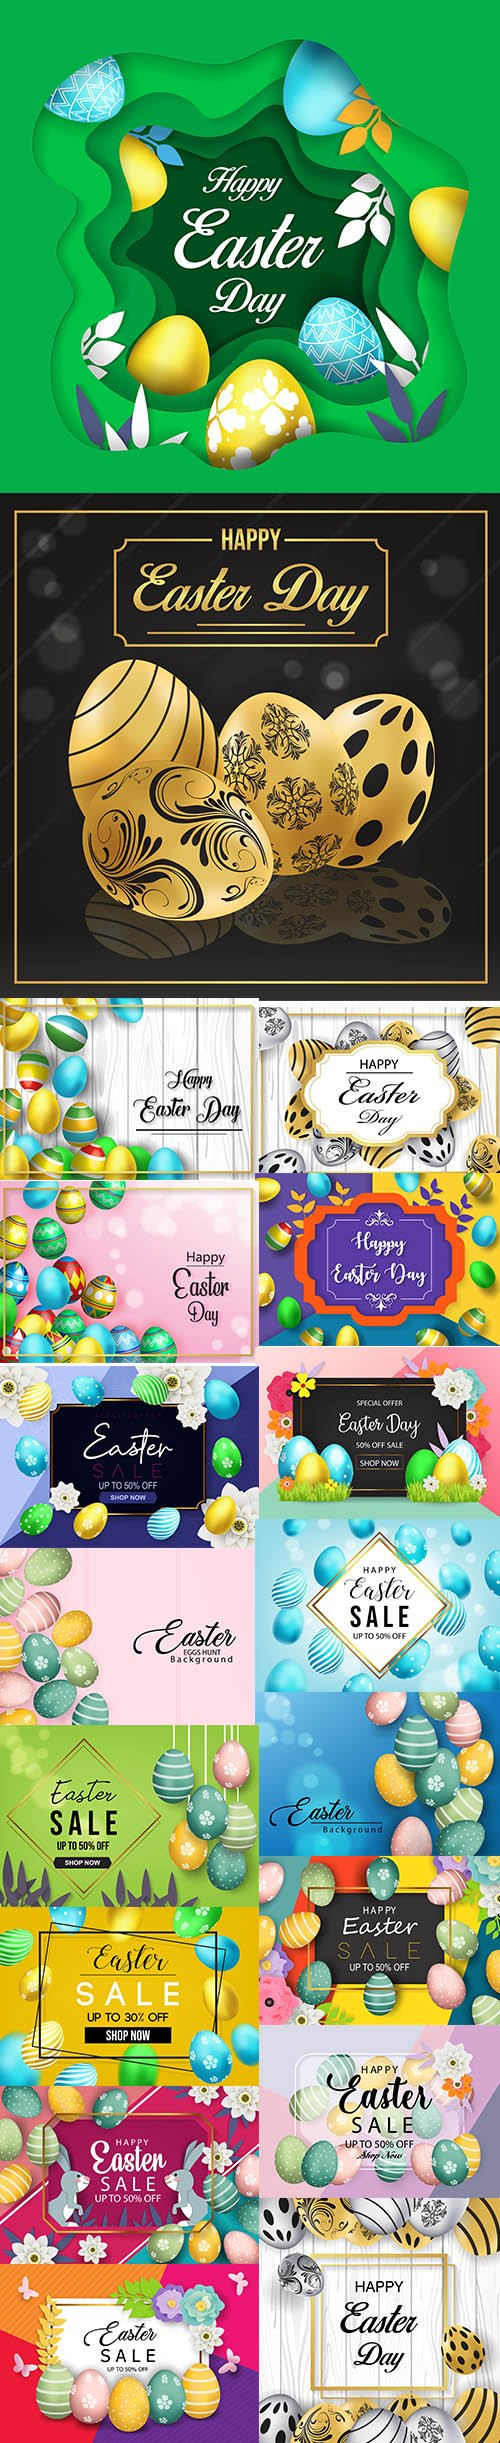 Happy Easter Luxury Backgrounds Template Pack Vol 3